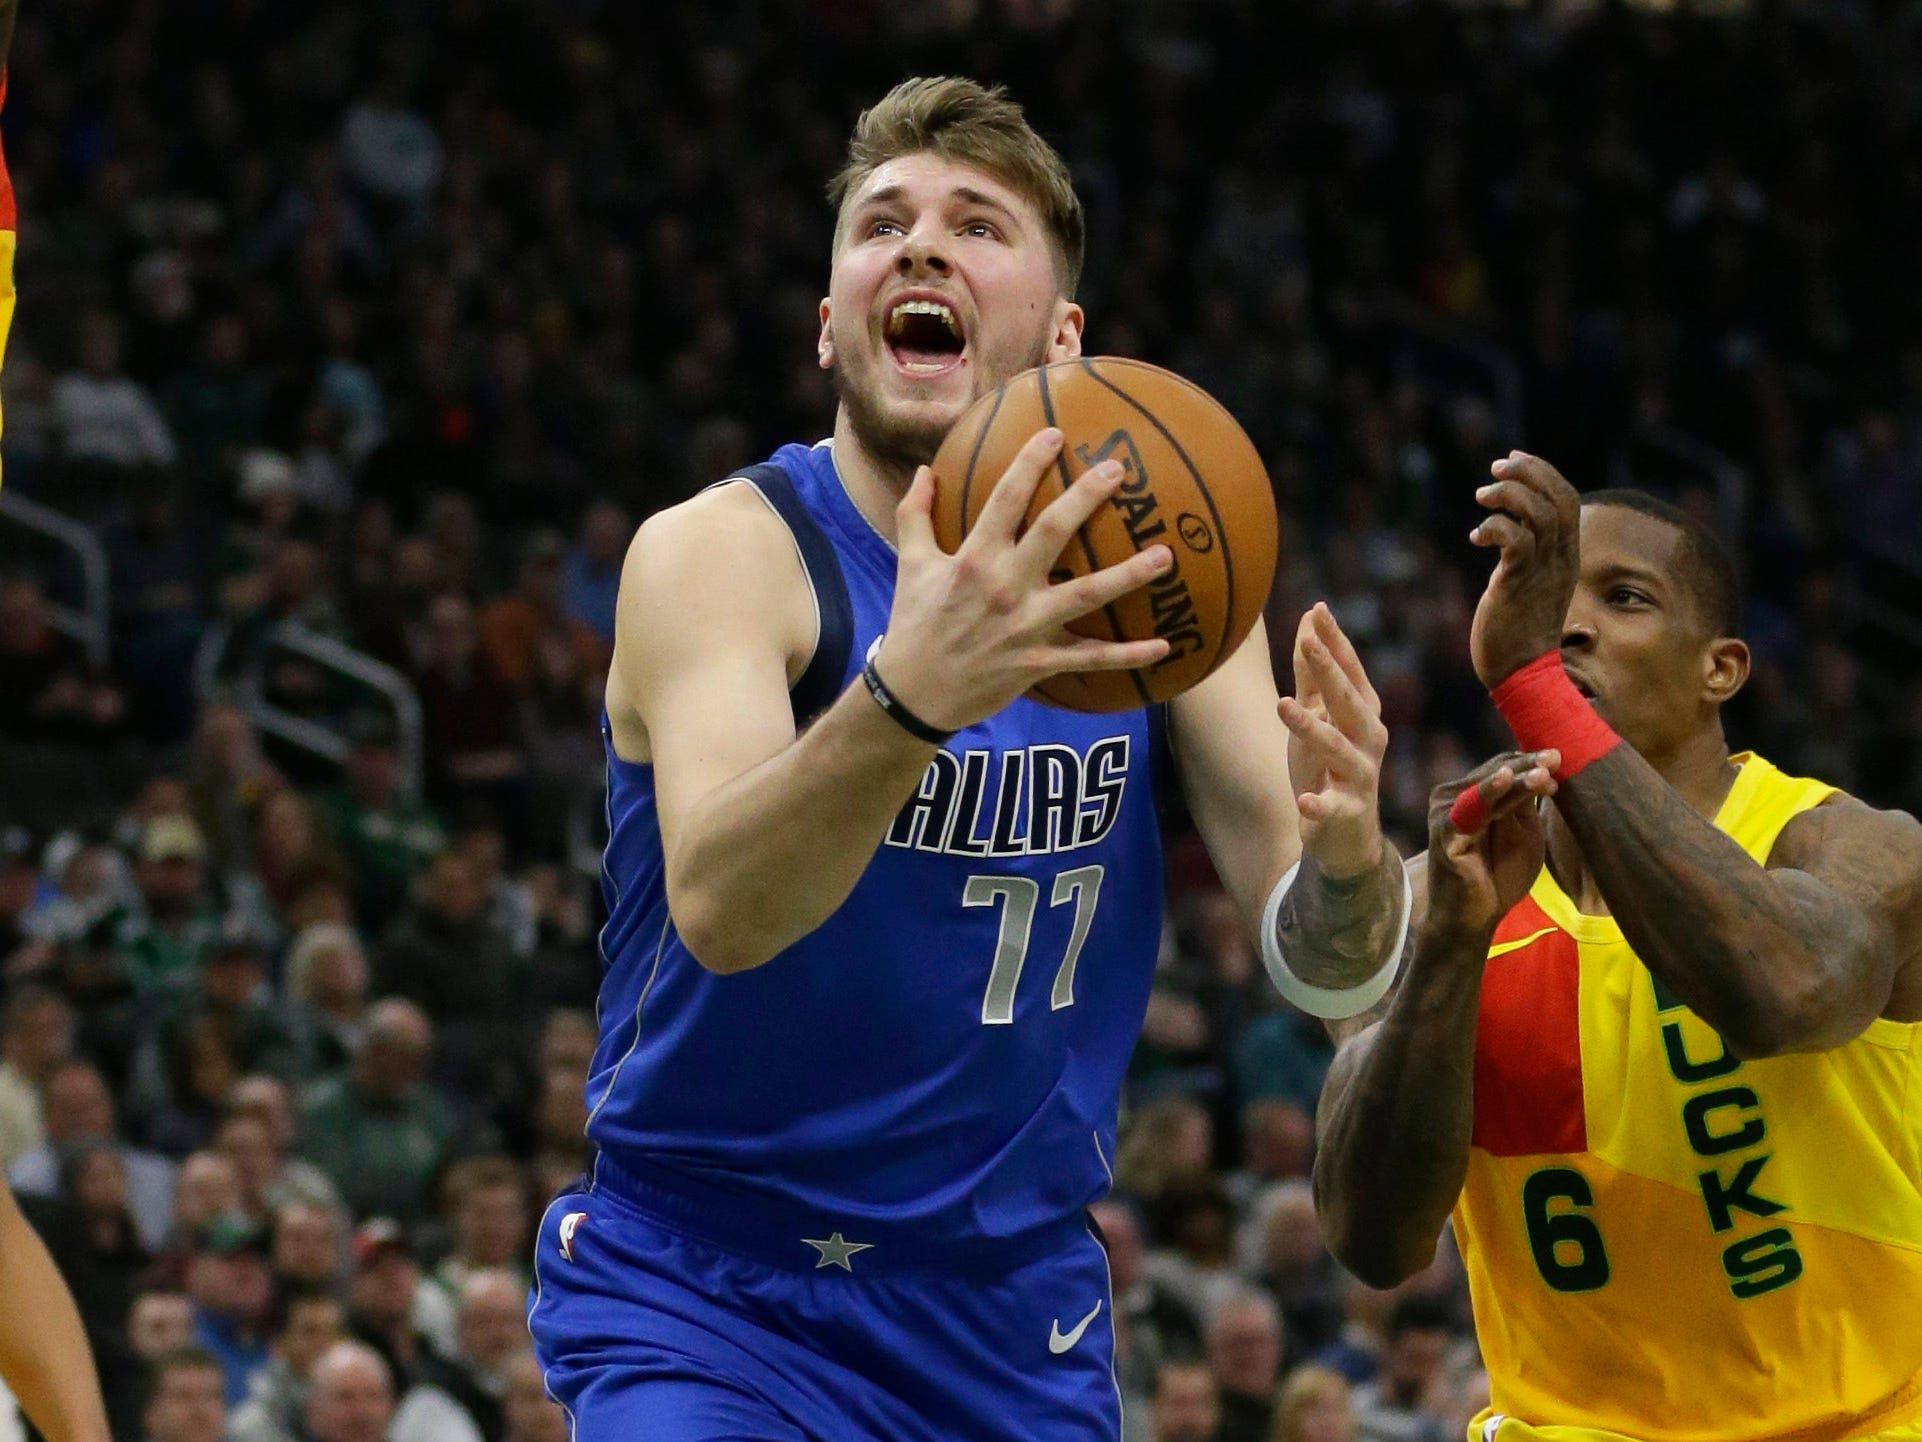 57. Luka Doncic, Mavericks (Jan. 21): 18 points, 11 rebounds, 10 assists in 116-106 loss to Bucks.